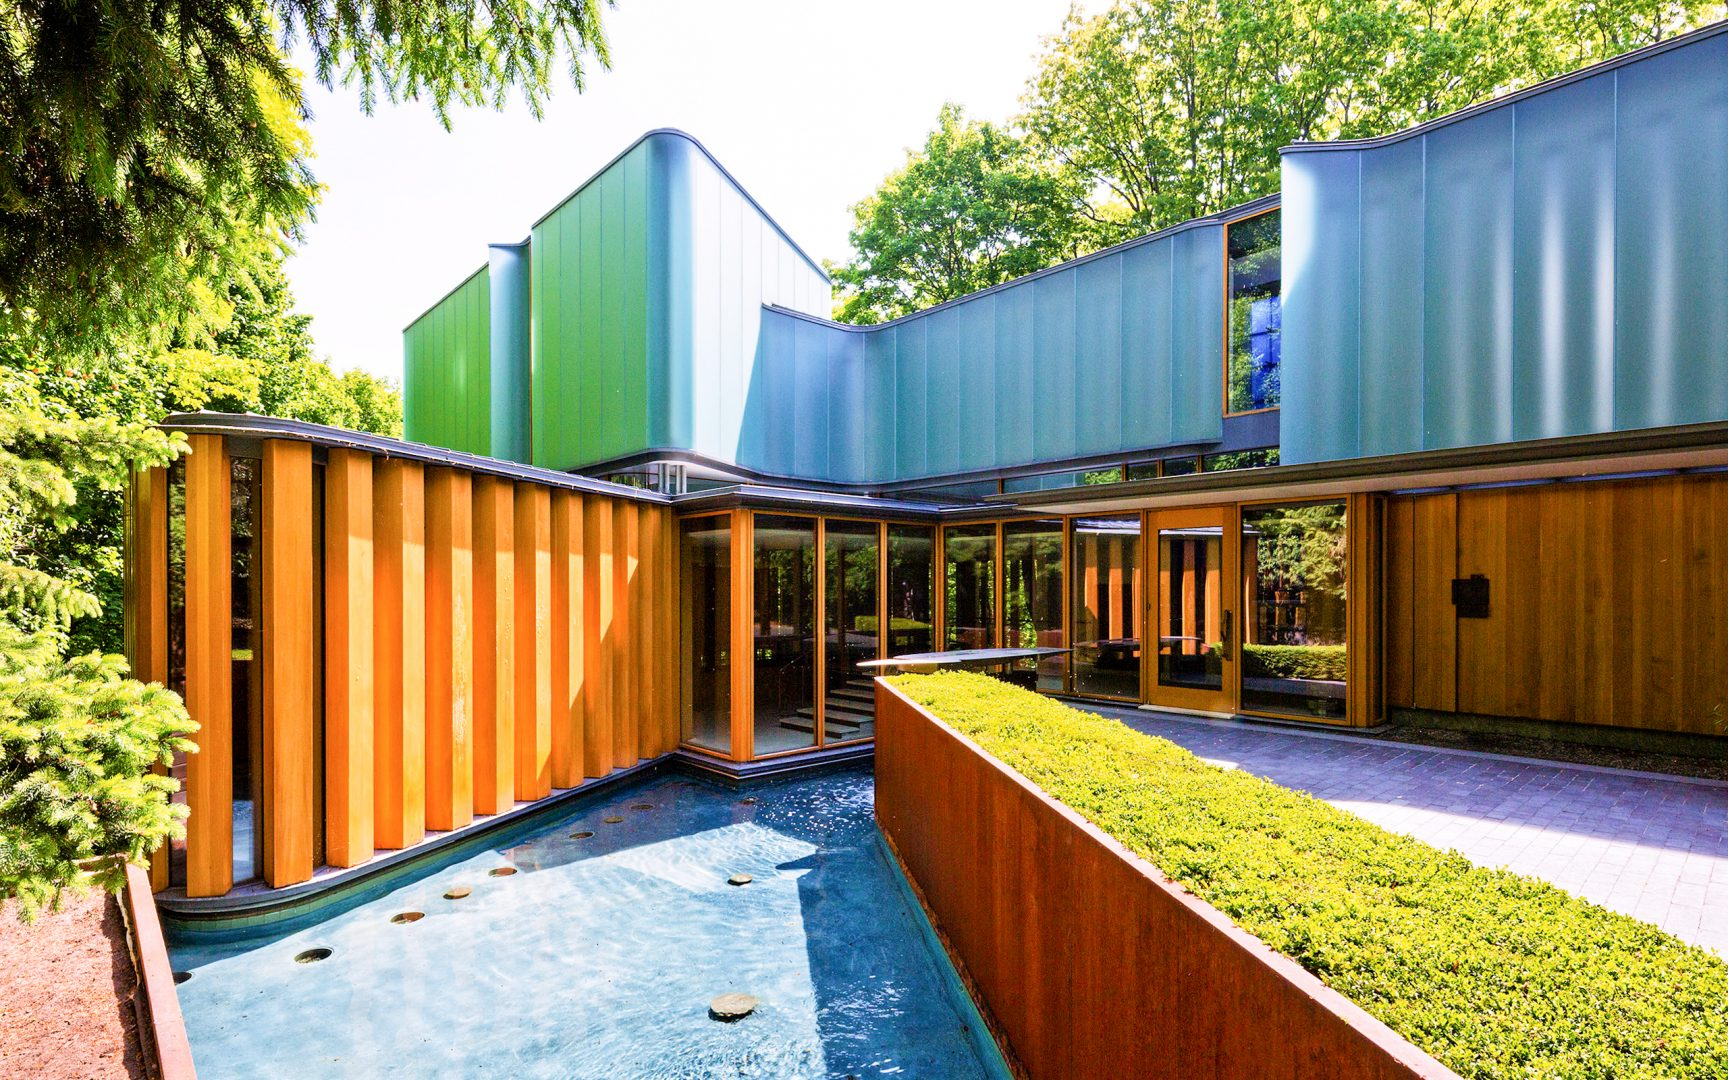 Integral House is a private residence, located at 194 Roxborough Drive in the Rosedale